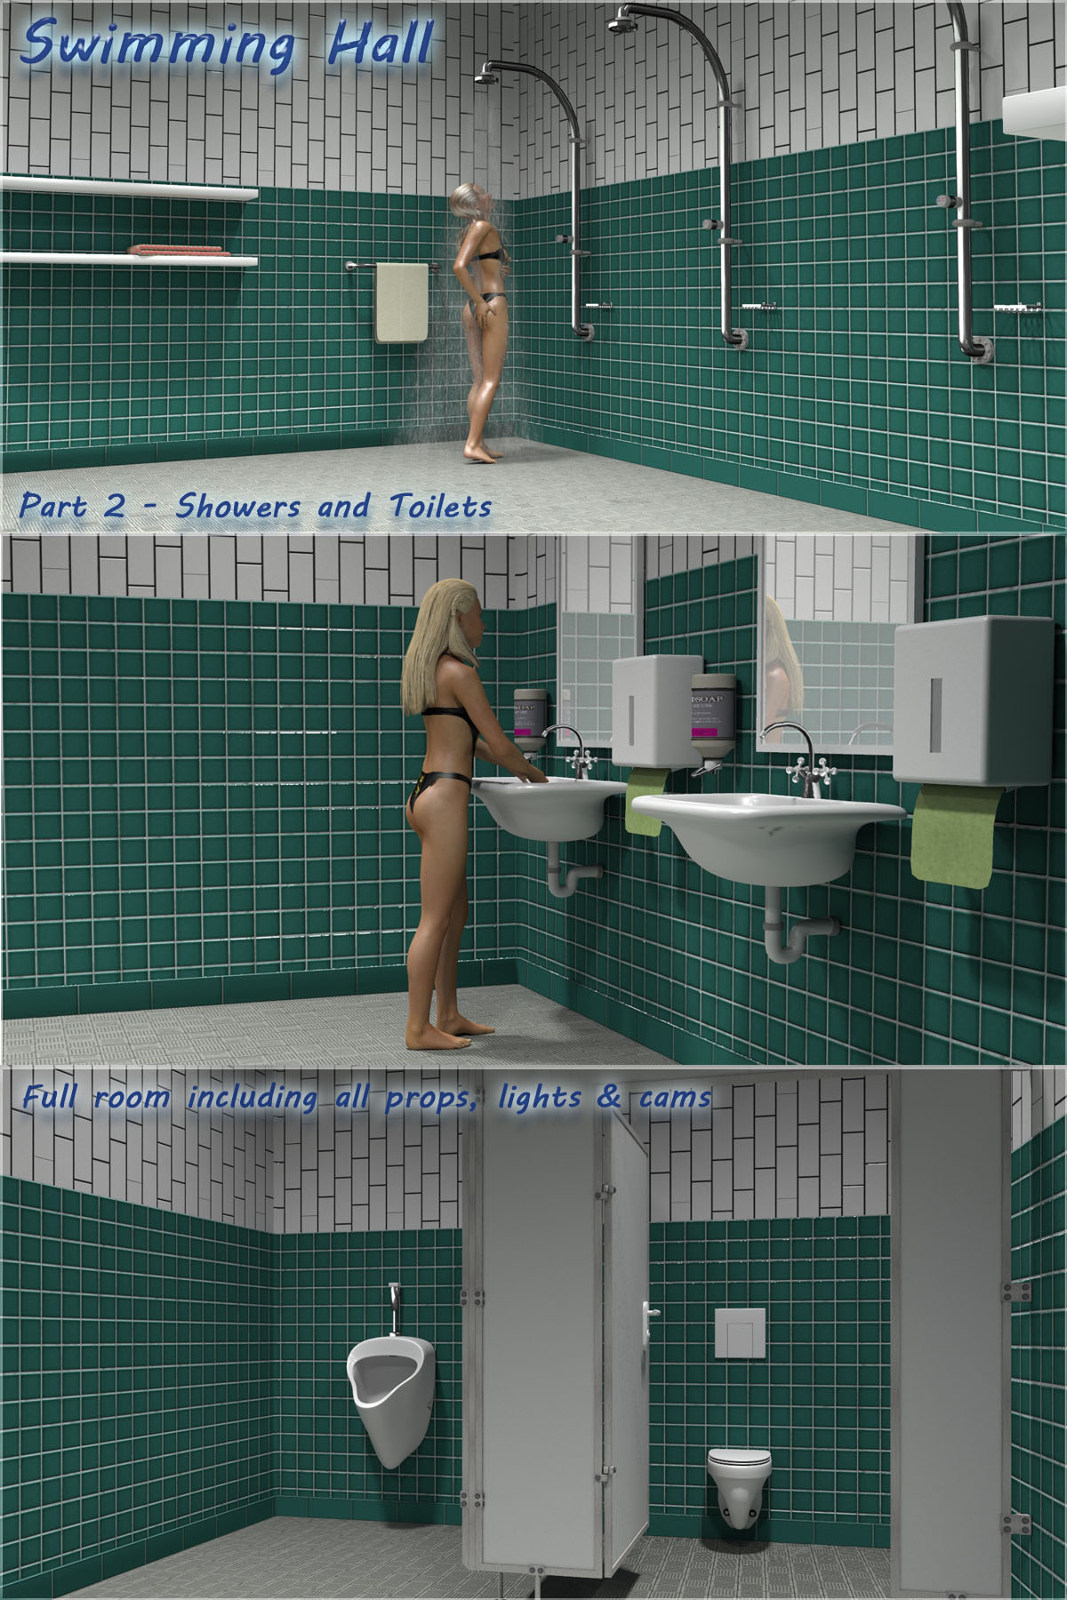 Swimming Hall Part 2 - Toilets and Showers